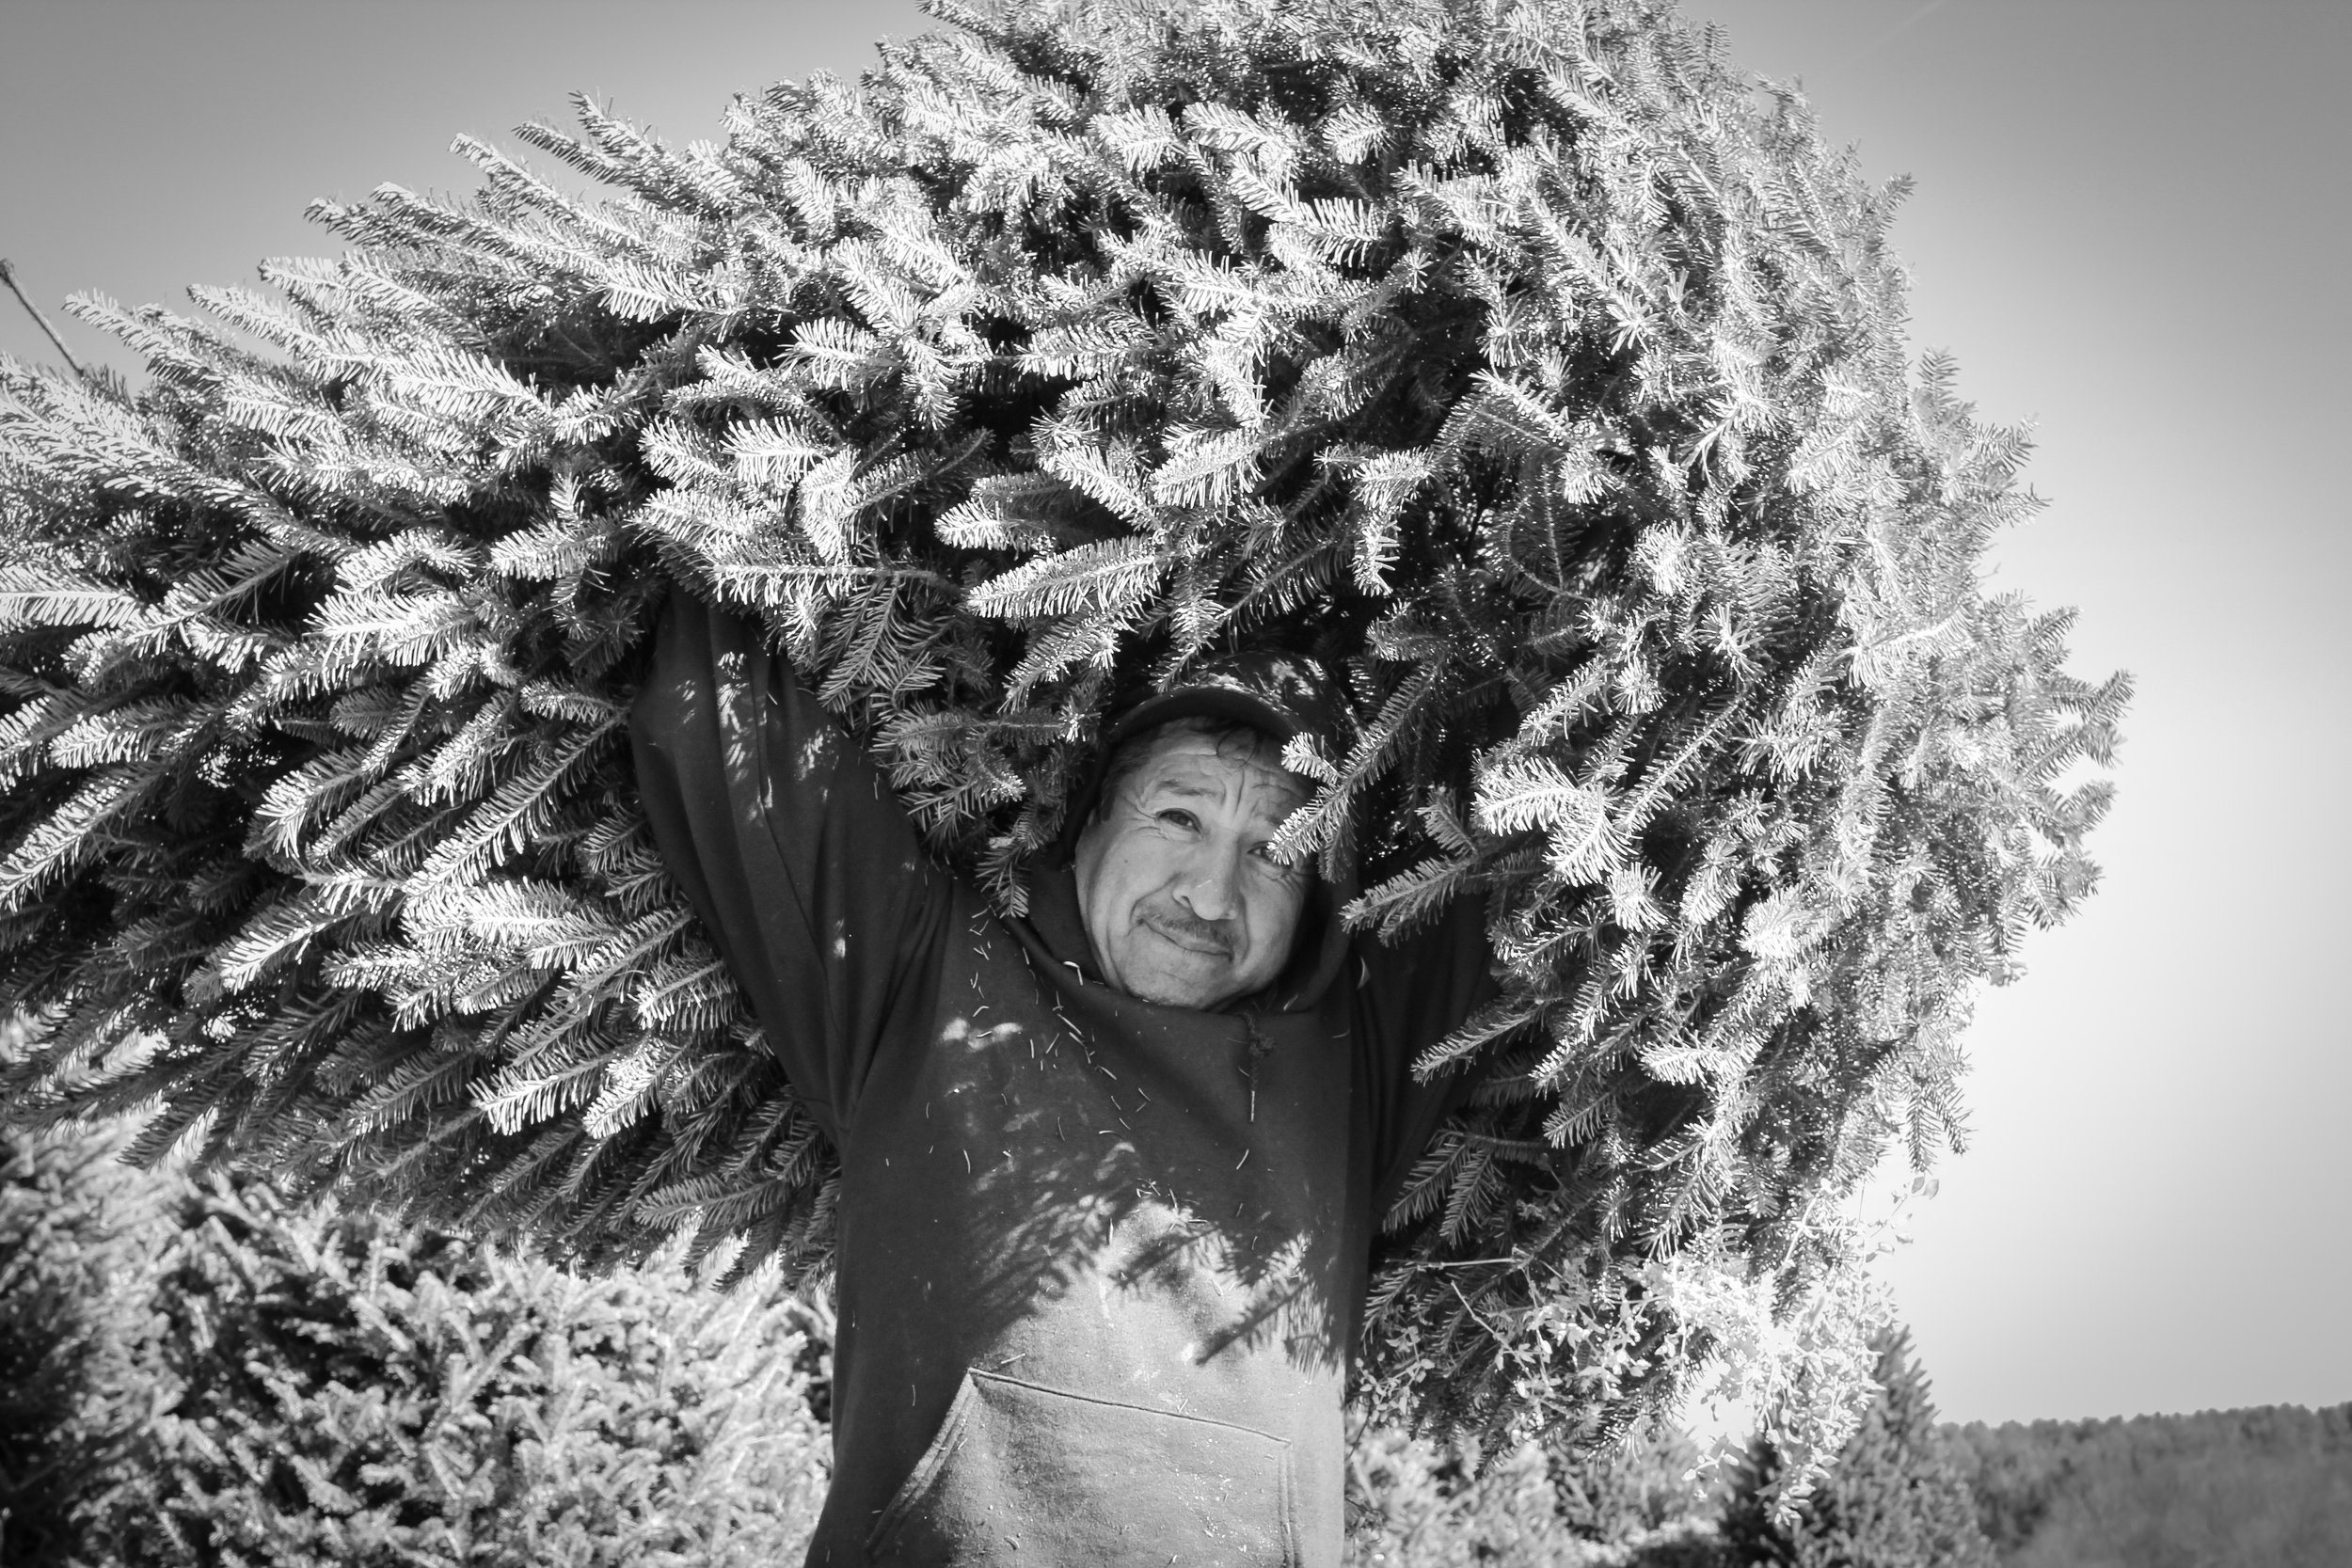 Migrant worker carrying Fraser Fir (Christmas Tree) on a farm in the rural Blue Ridge Mountains, North Carolina.